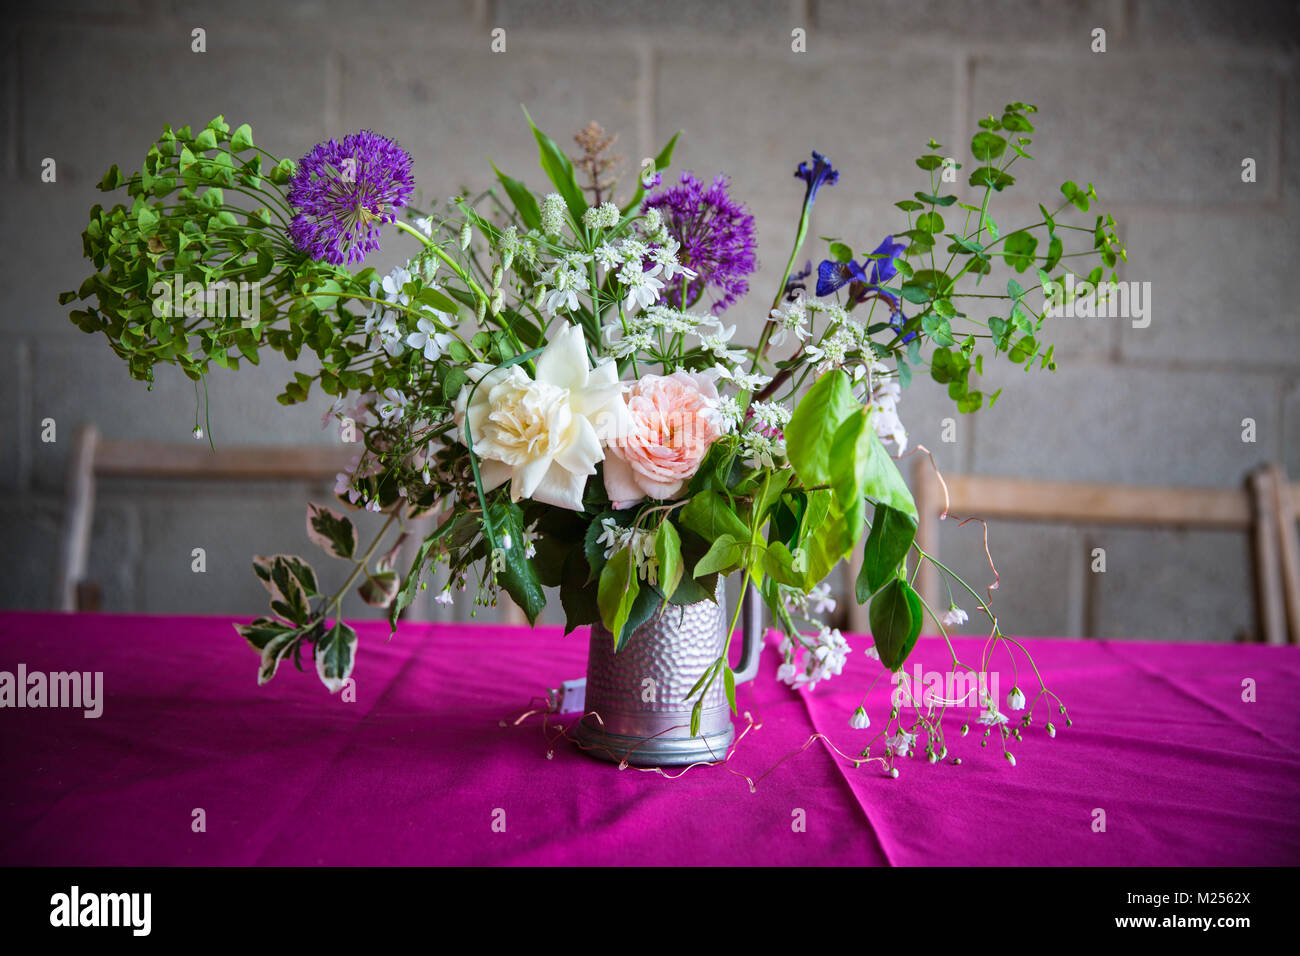 Wedding table floral arrangement on pink tablecloth Stock Photo